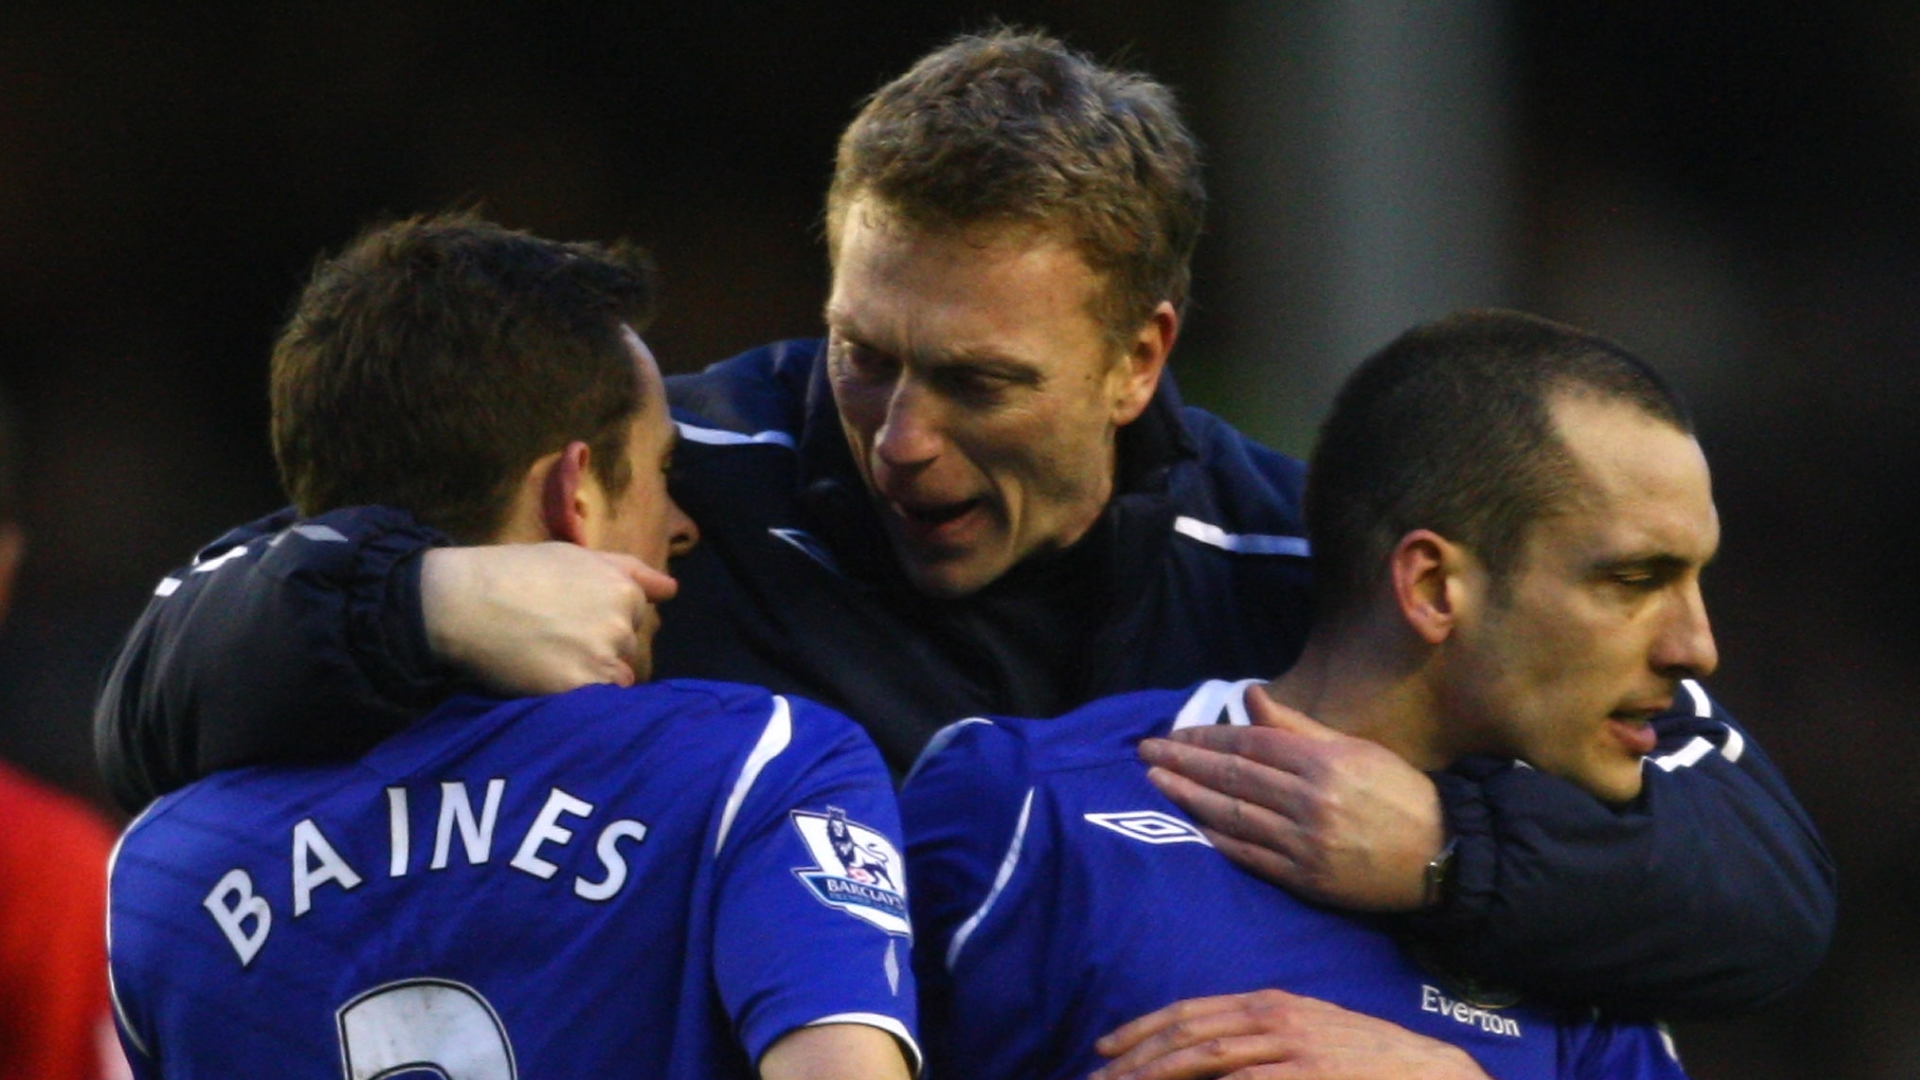 Moyes: Everton was a center-forward from the Premier League